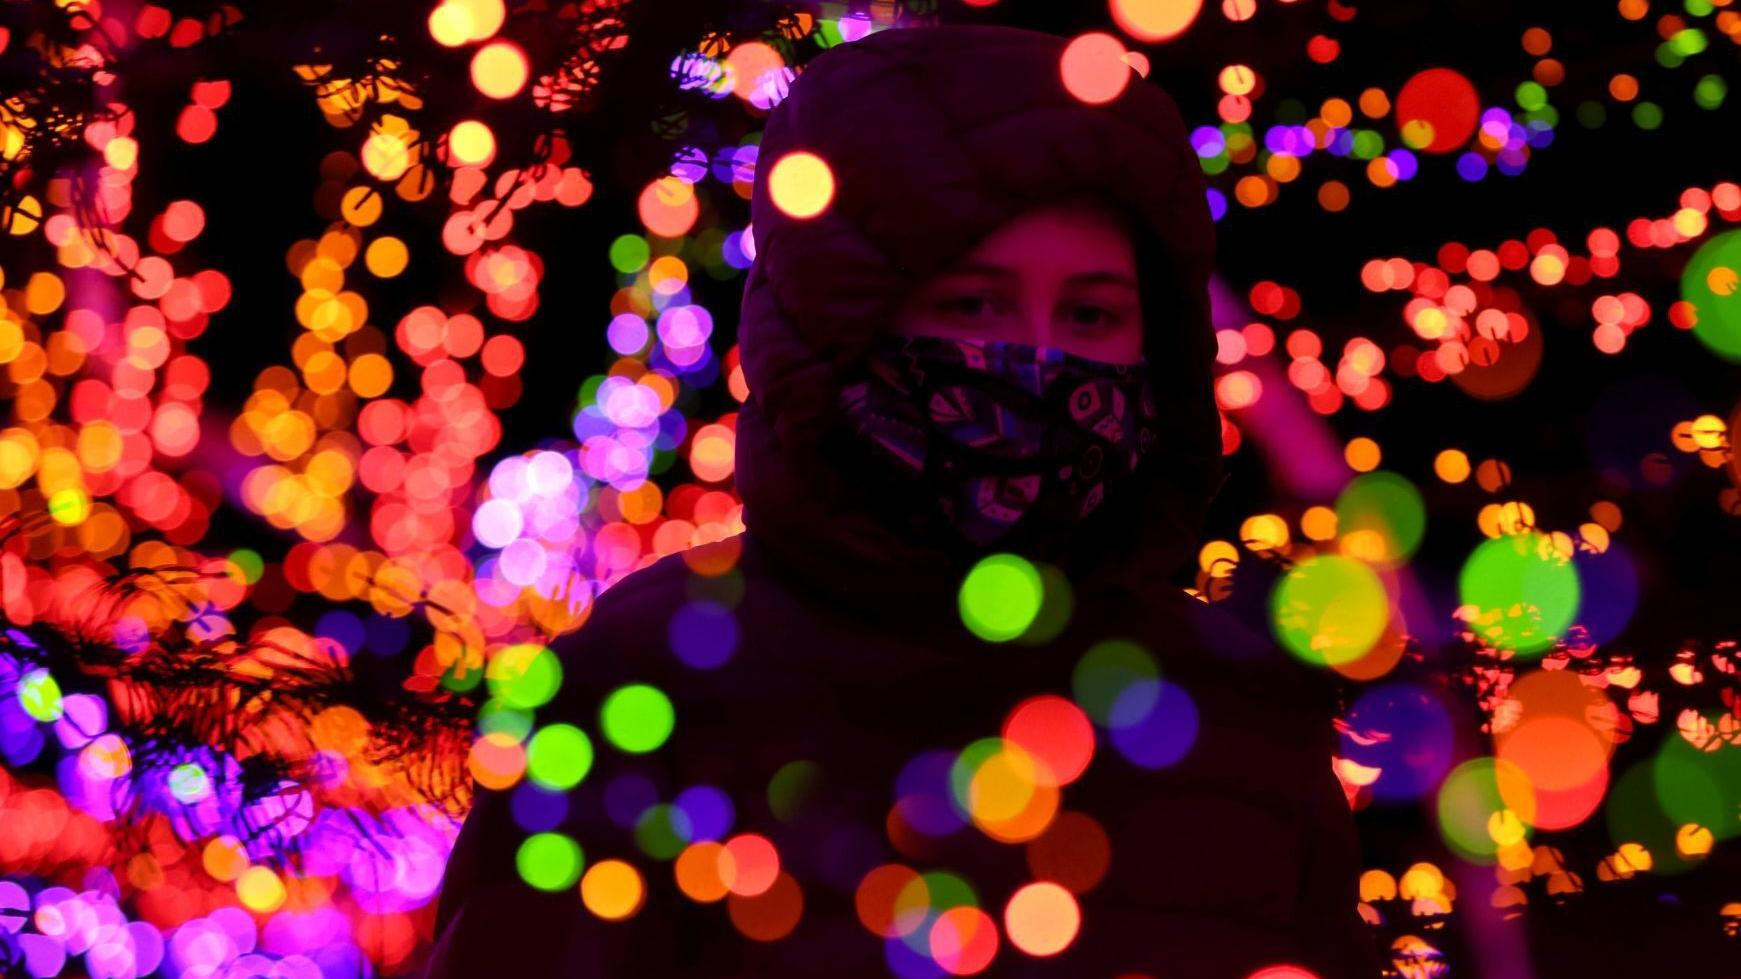 Best Bets: 'Glowy Snowy Day,' a Zoom play and last chance to see holiday lights